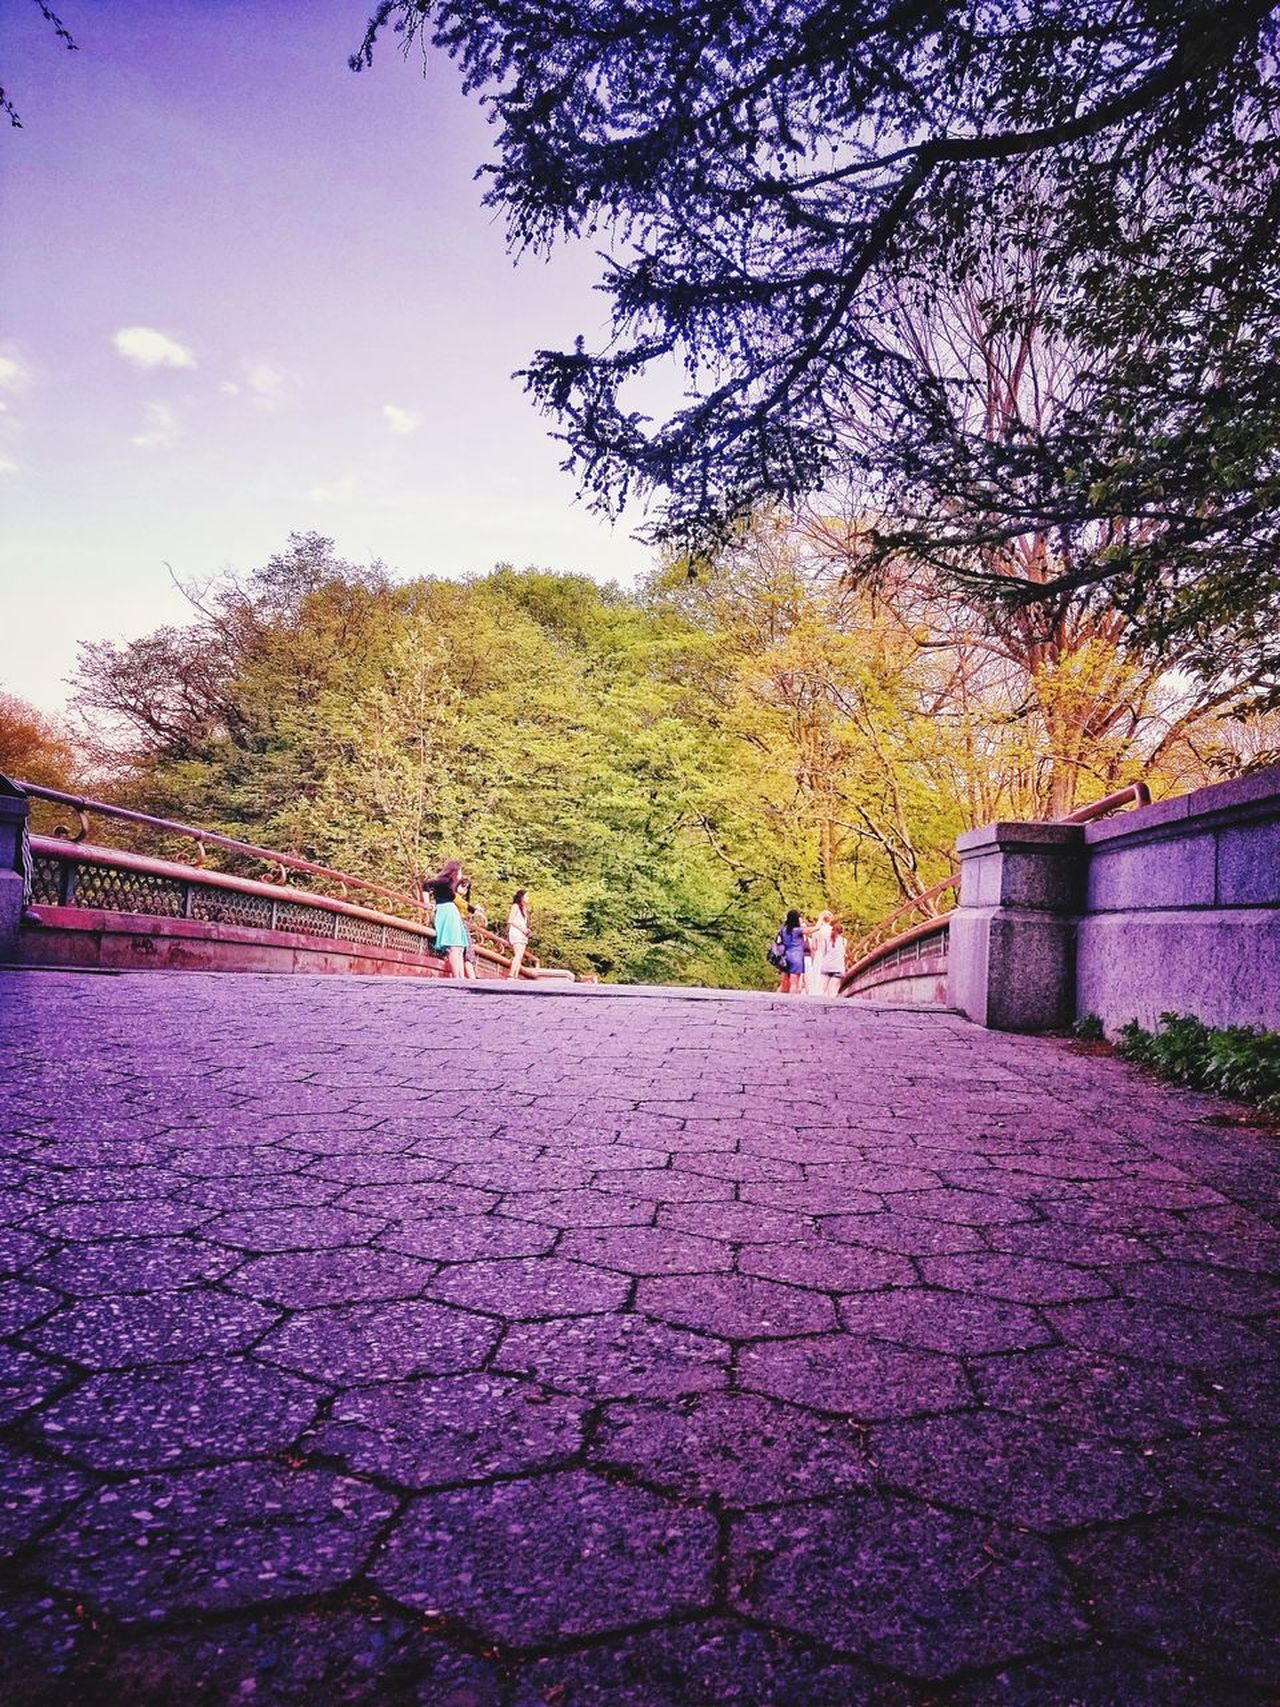 Prospect Park Bridge Brooklyn New York City Sky Nature Real People Outdoors People Community Street Photography